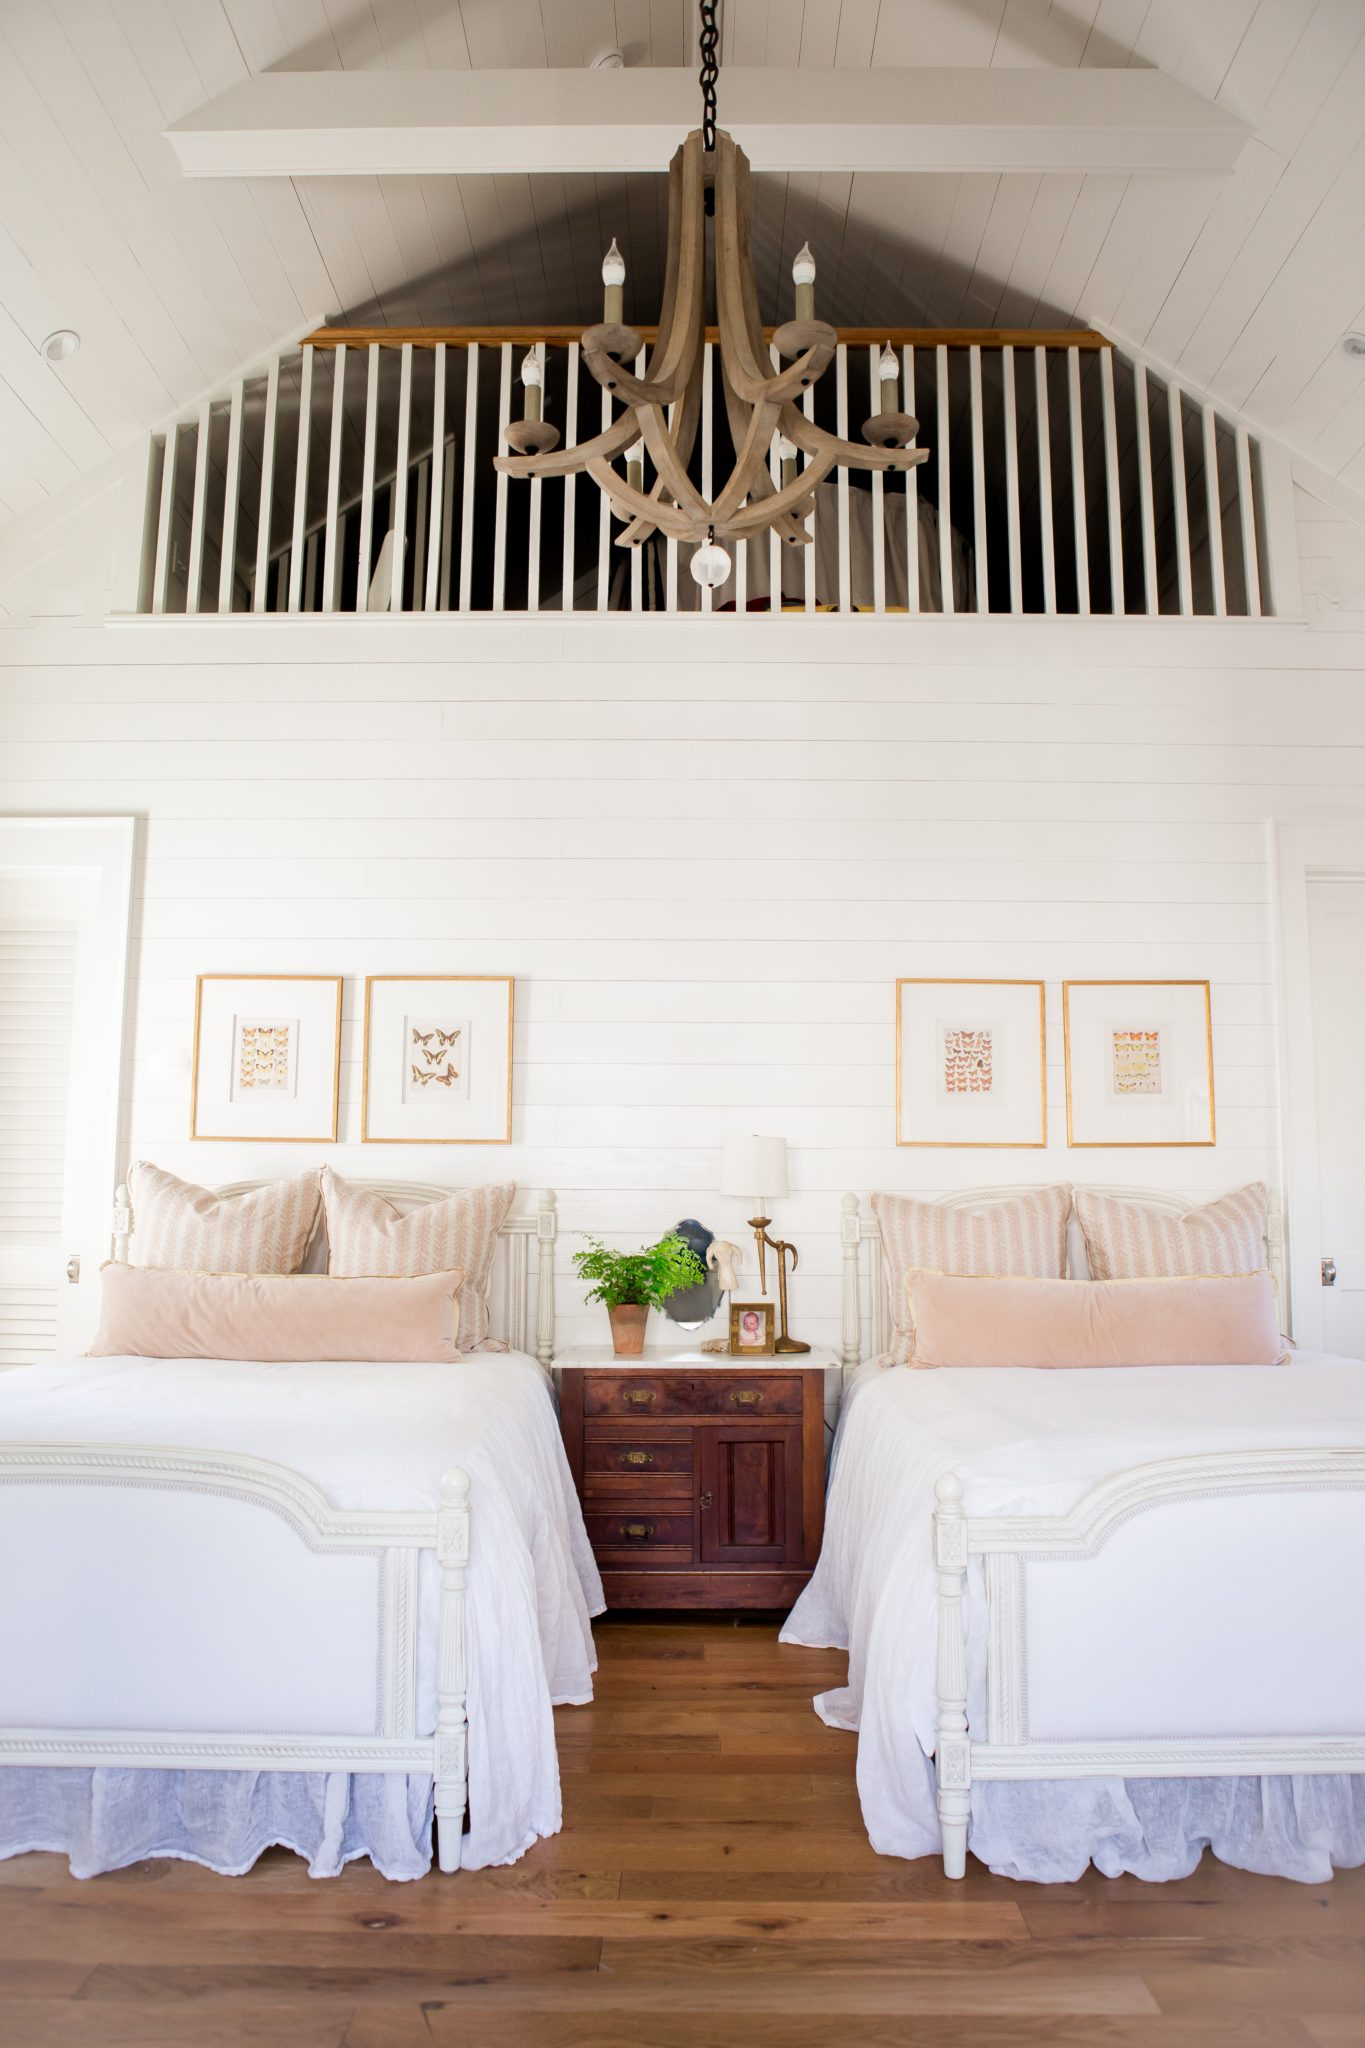 Florida beach house with loft, pink pillows & shiplap walls by Ashley Gilbreath Interior Design